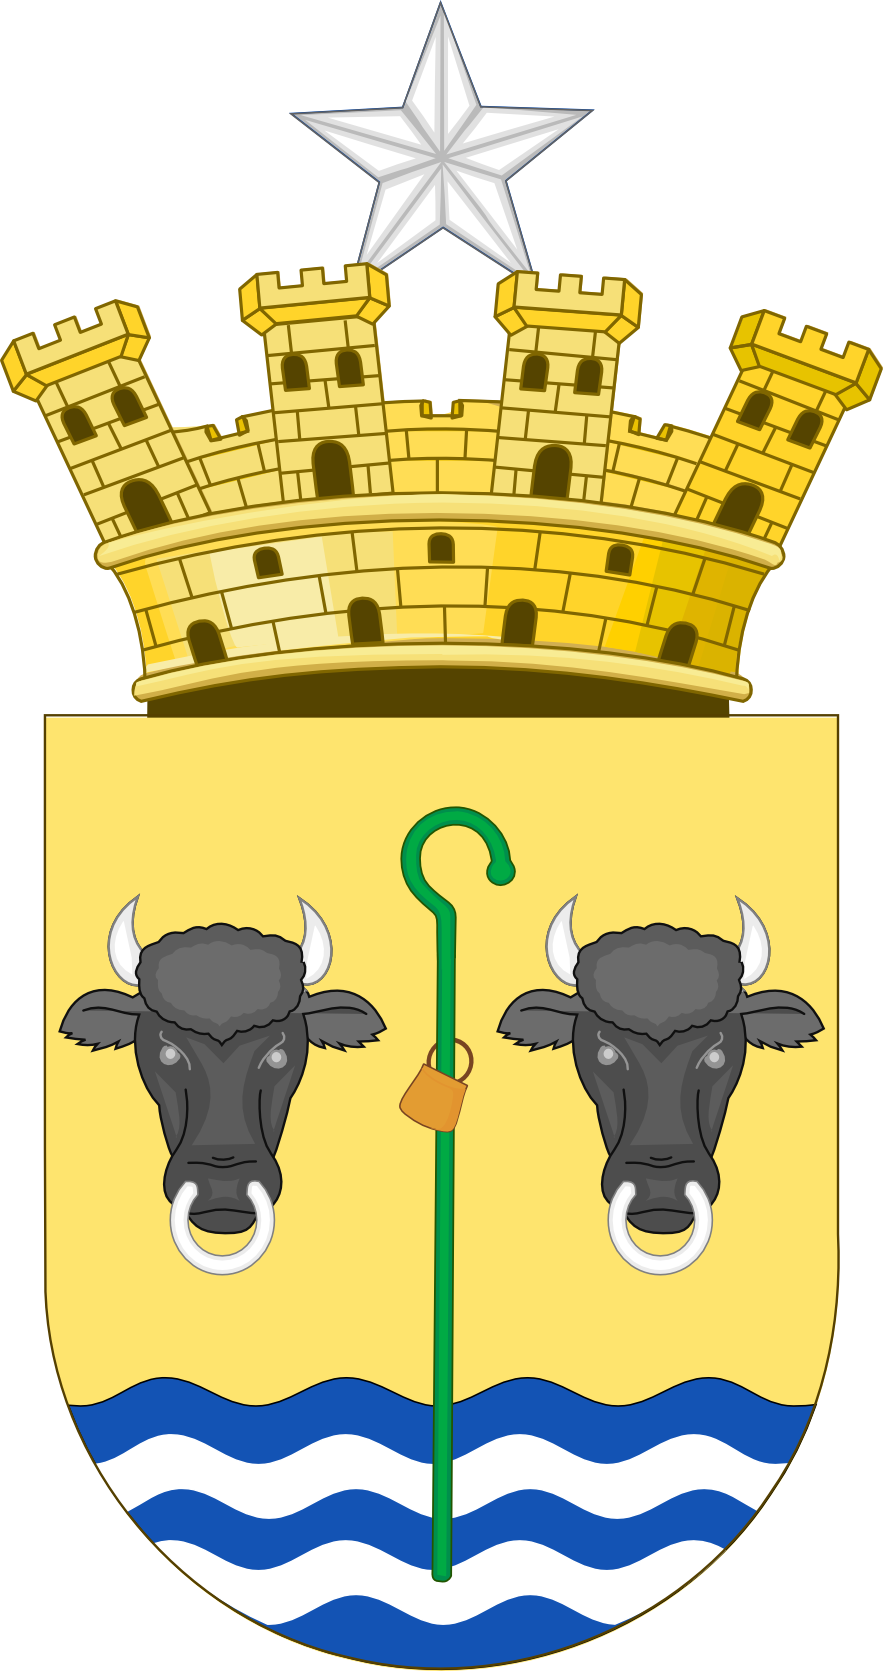 Coat of arms of Puerto Baquerizo Moreno